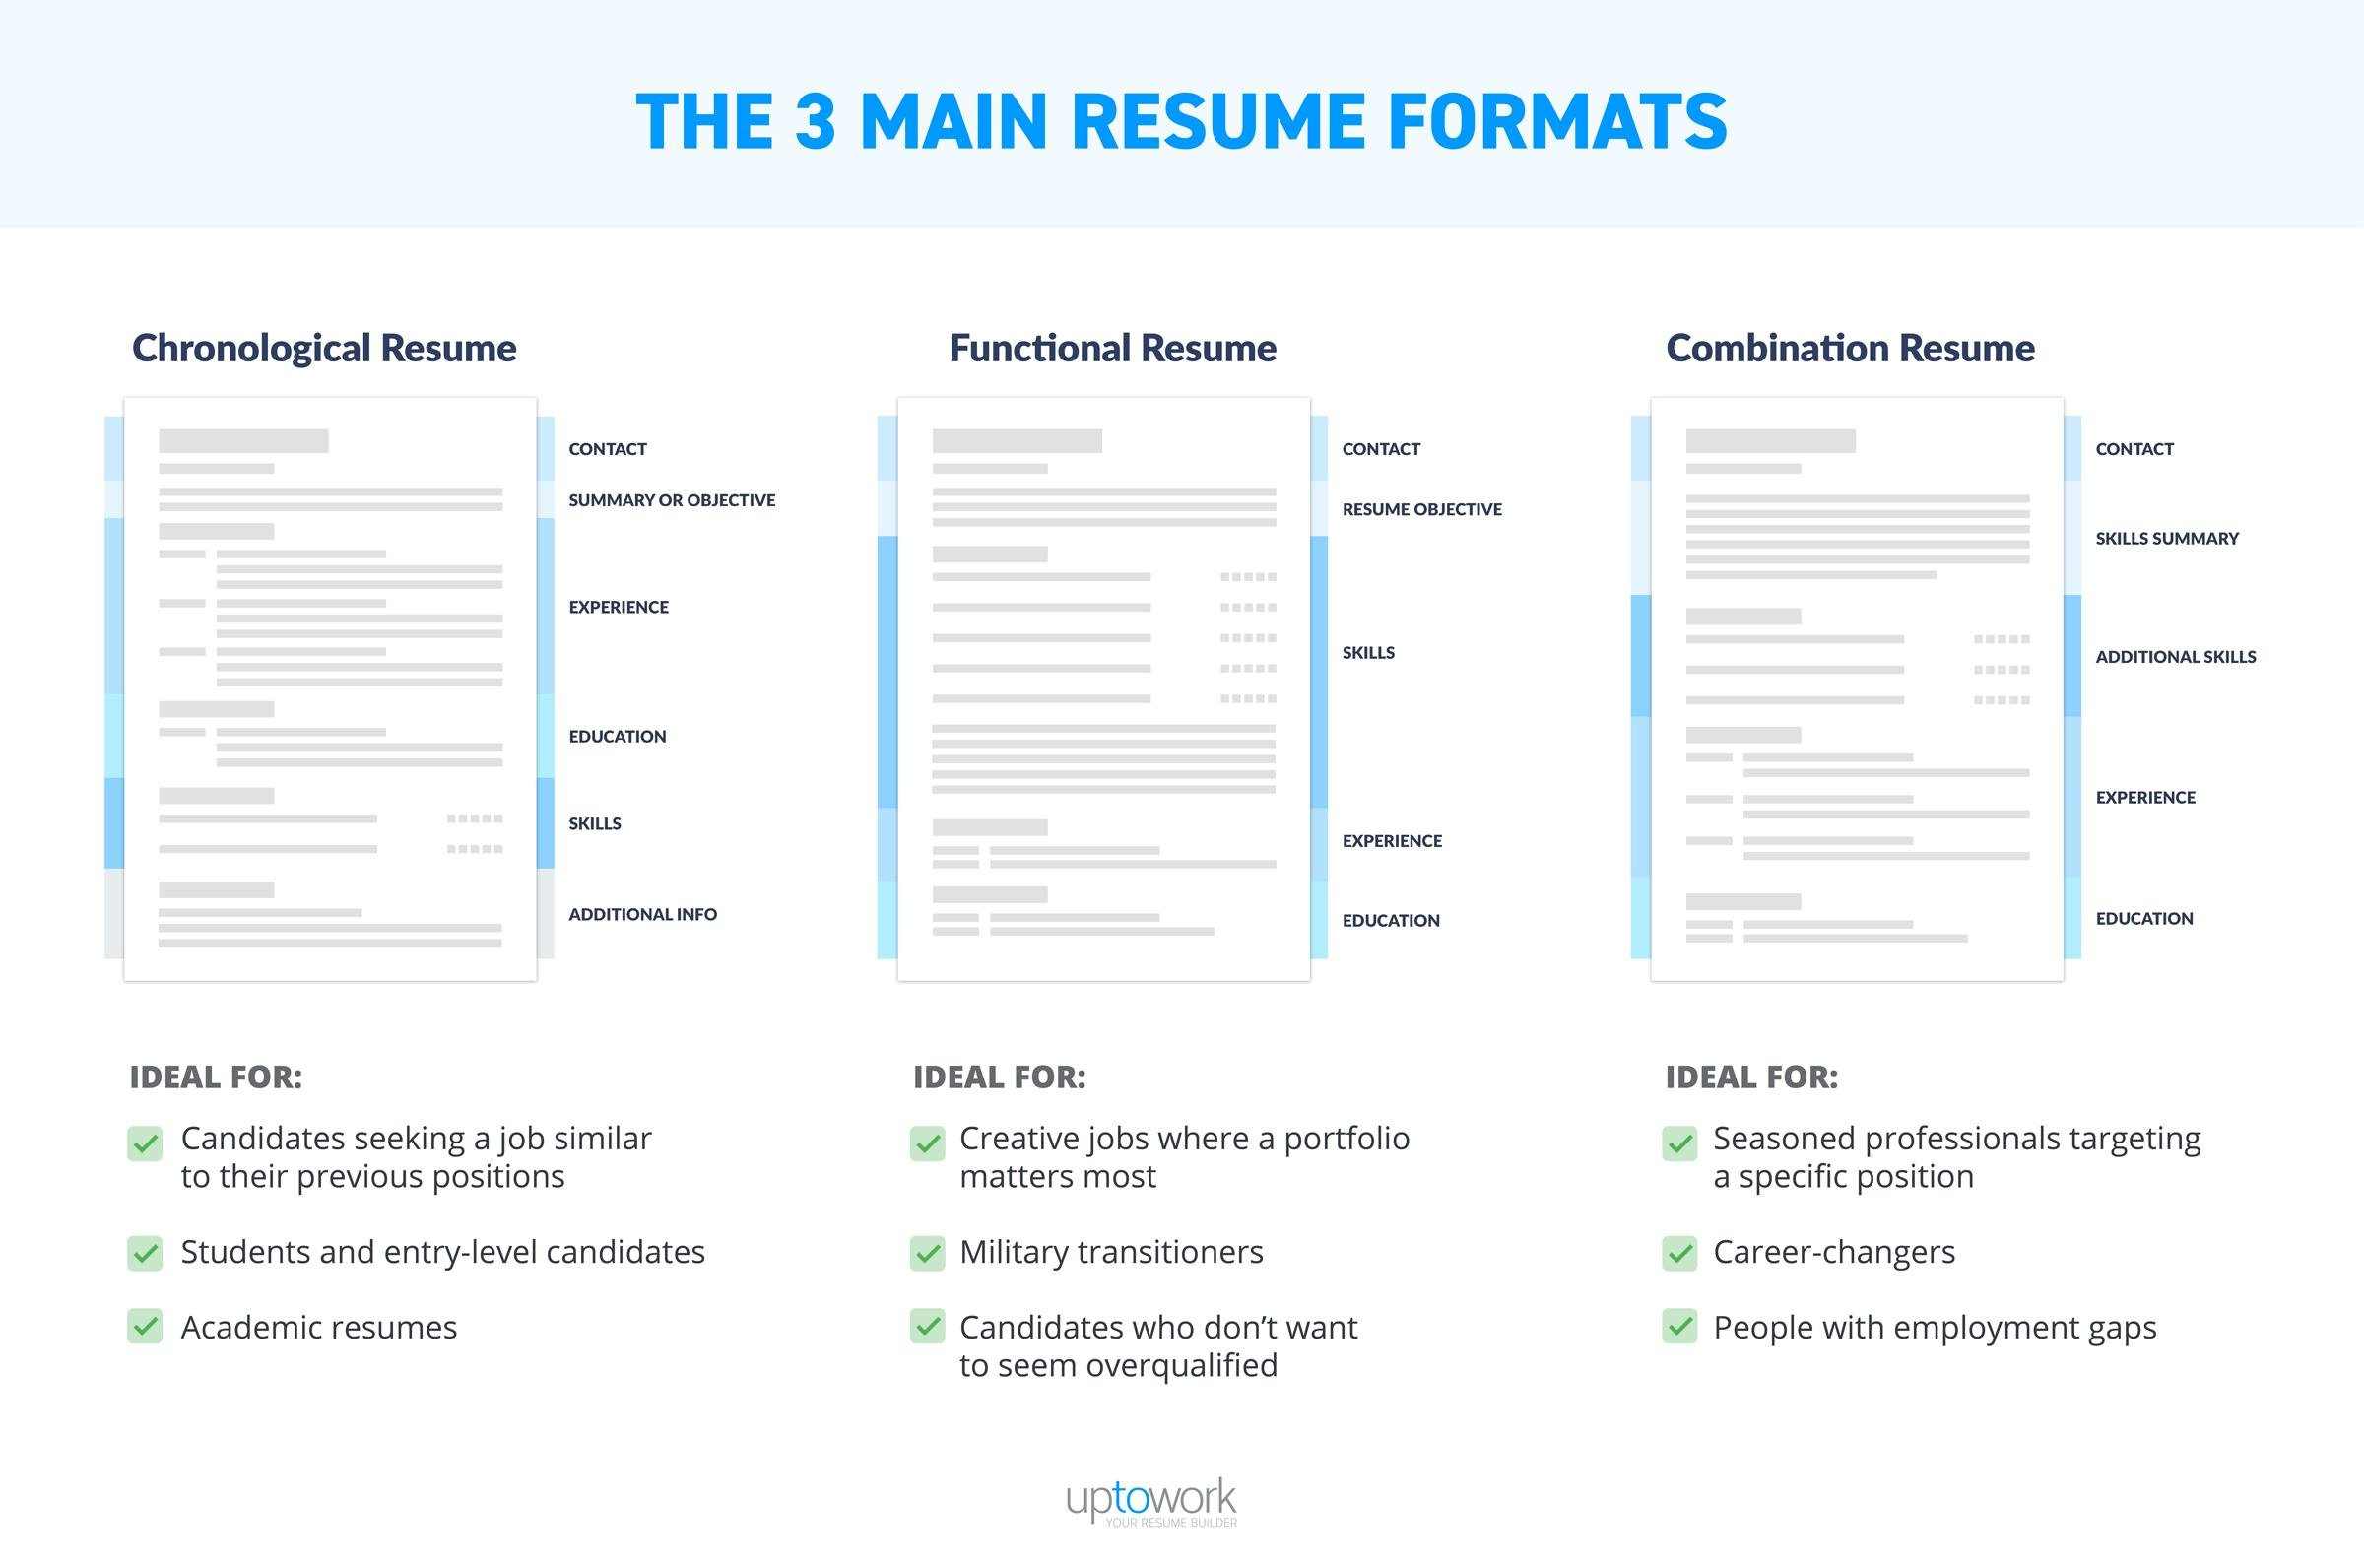 Resume Formats: Chronological, Functional, Combination  Resume Types